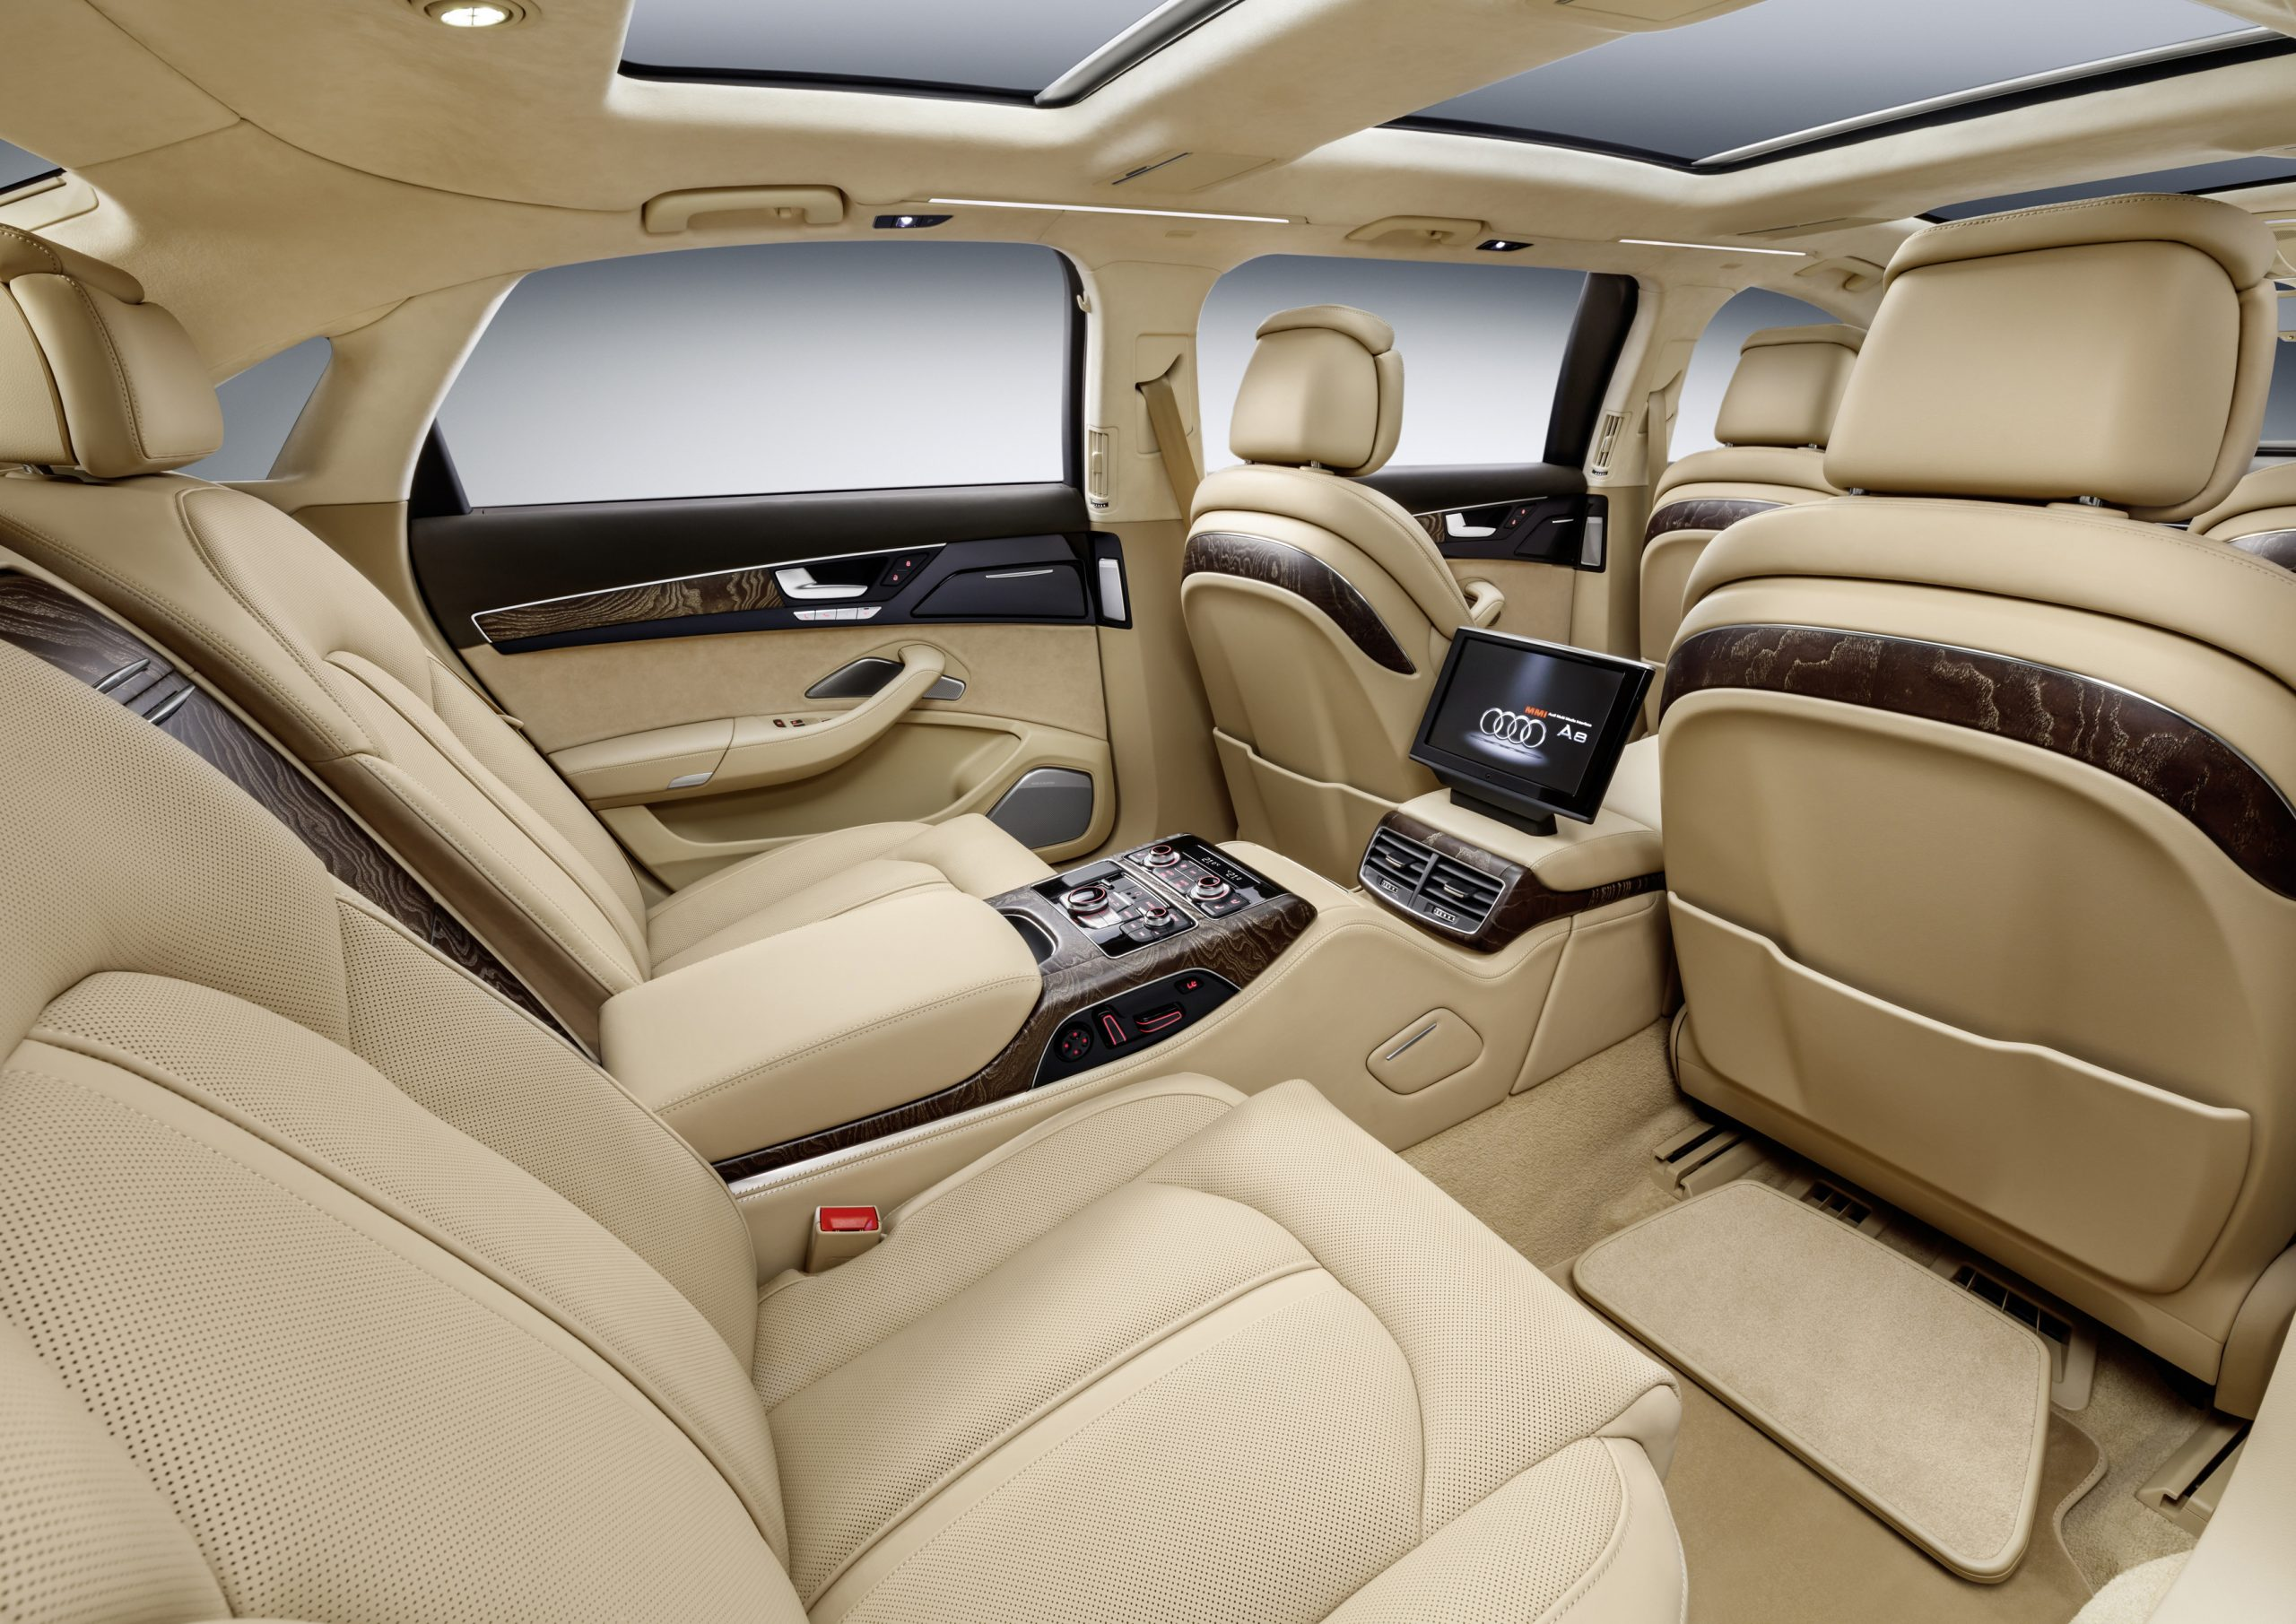 Audi A8 L Extended interior